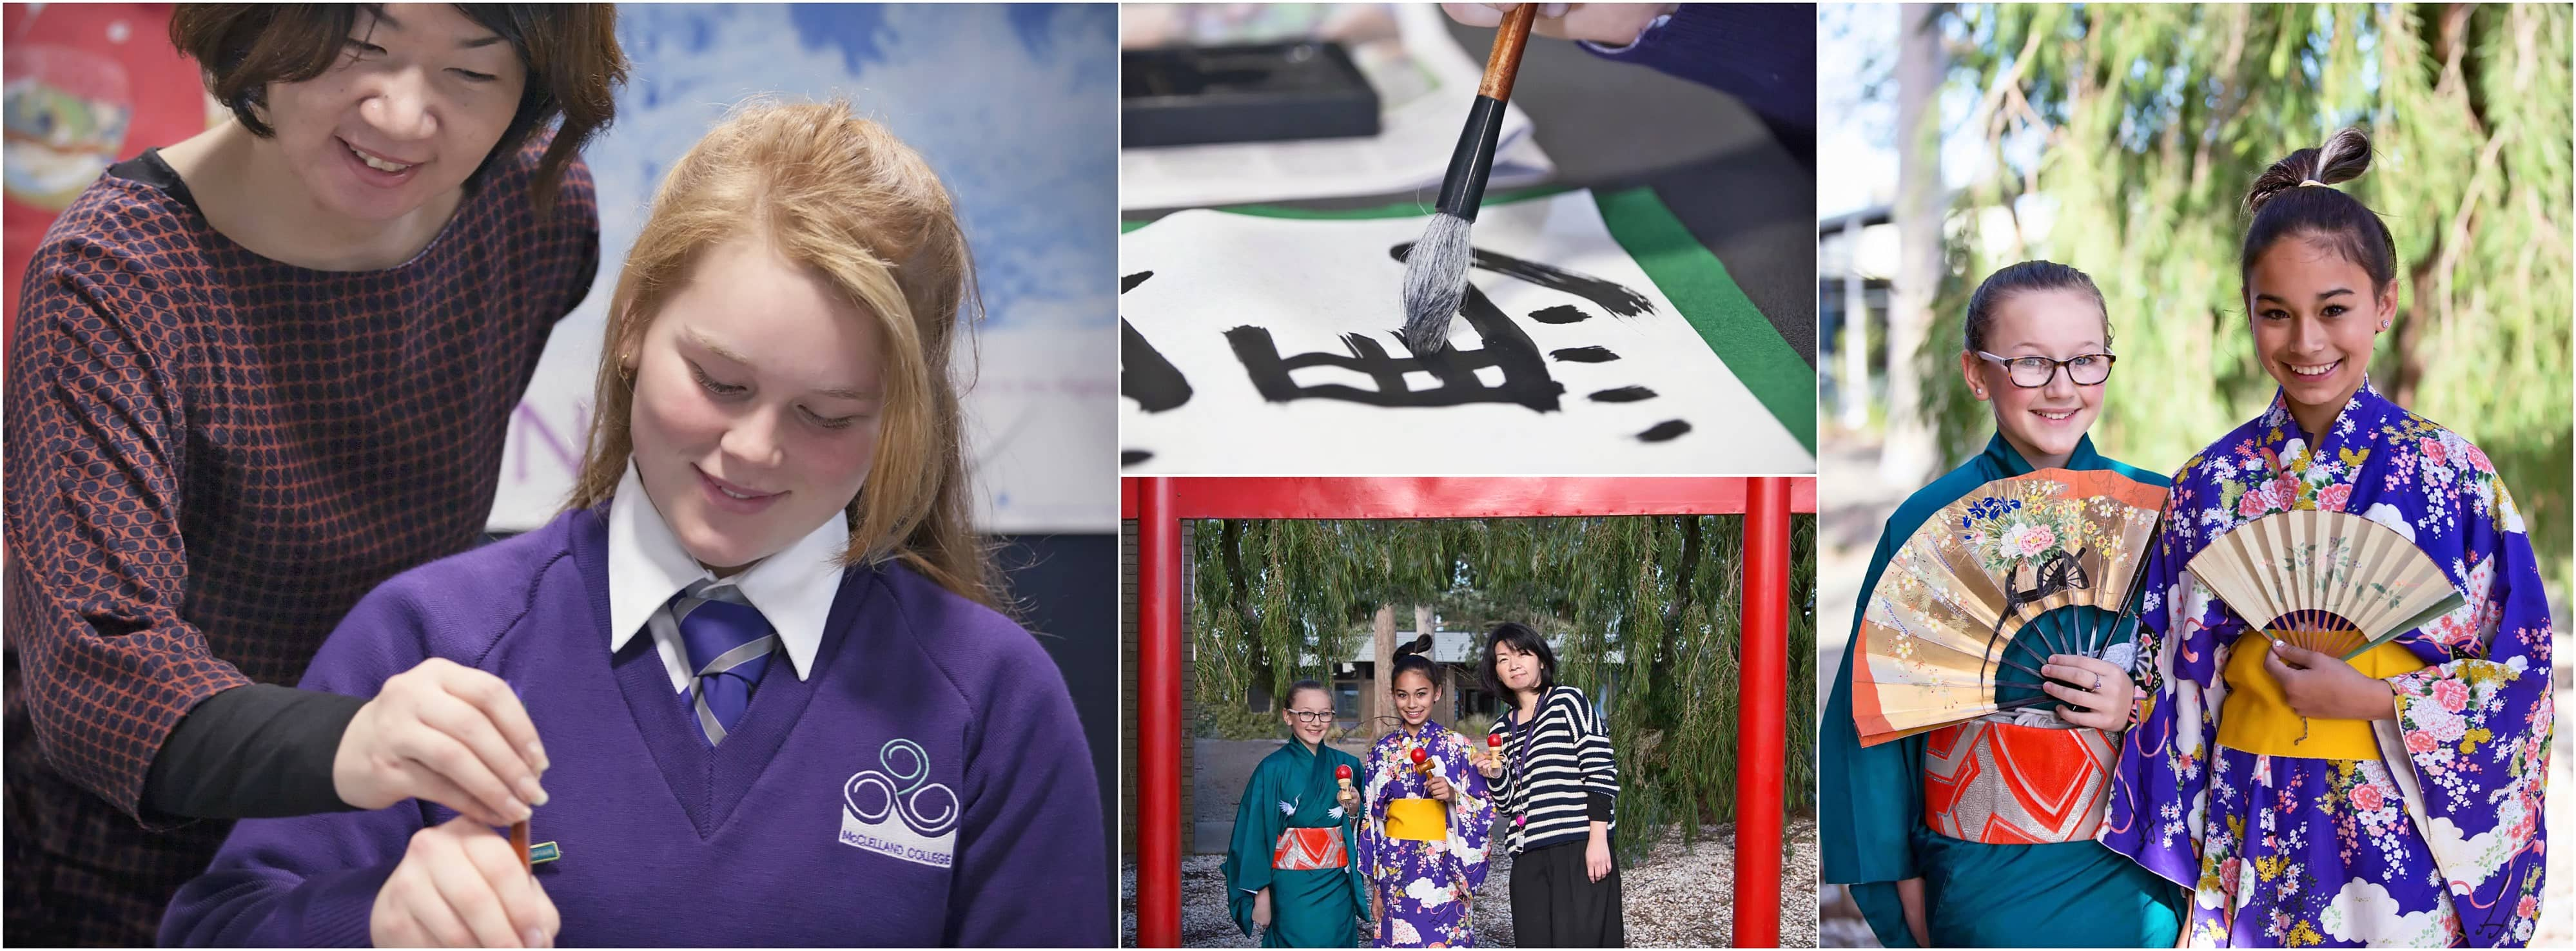 We have an extensive Japanese Language and Cultural Experience Program from Year 7 to Year 12